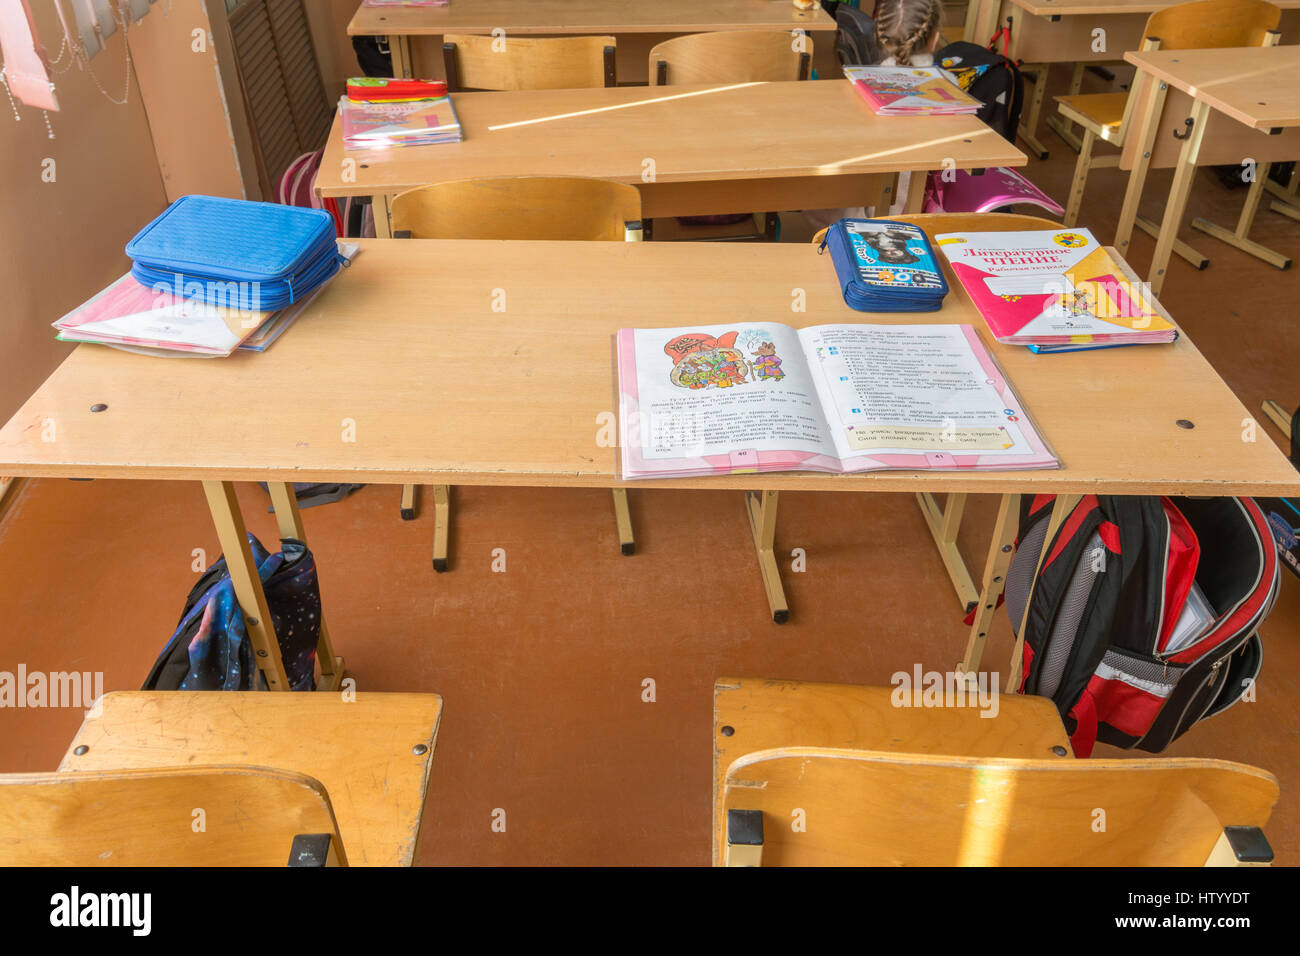 https://c8.alamy.com/comp/HTYYDT/anapa-russia-february-28-2017-top-view-of-a-student-in-the-ordinary-HTYYDT.jpg